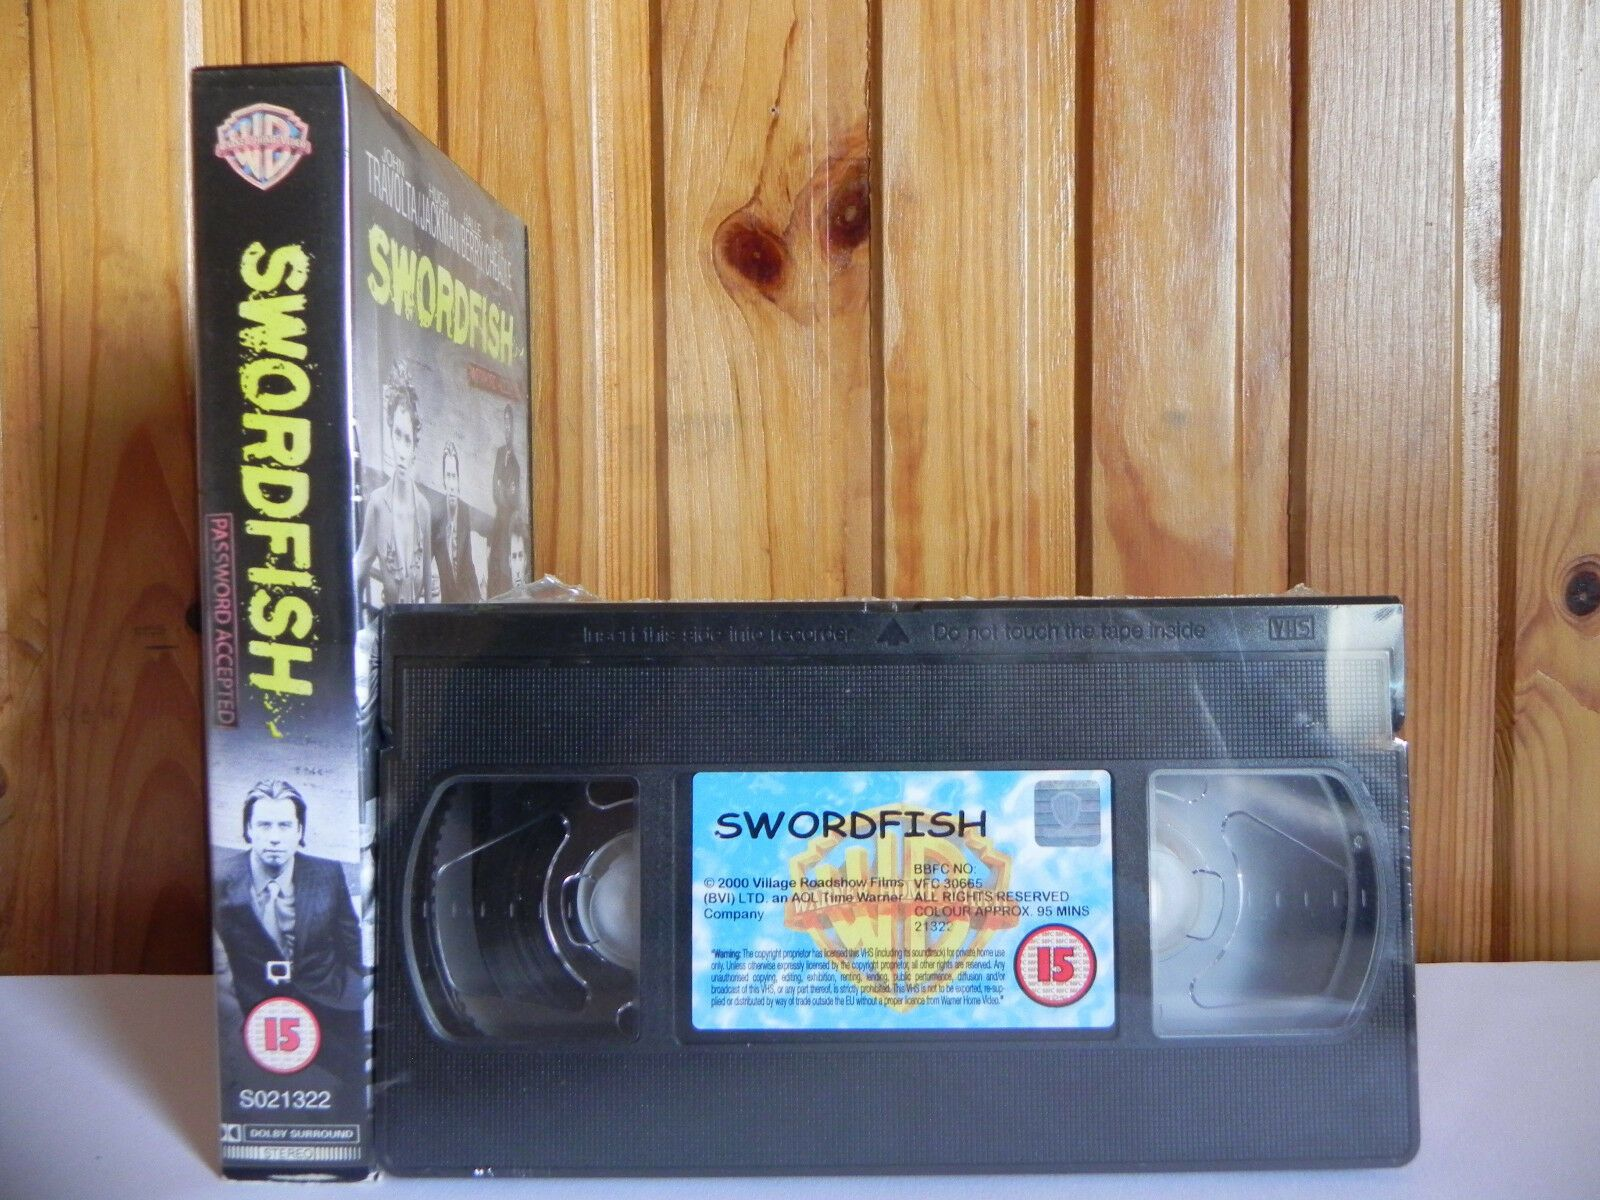 Swordfish (2001); [Brand New Sealed] Action Thriller - John Travolta - Pal VHS